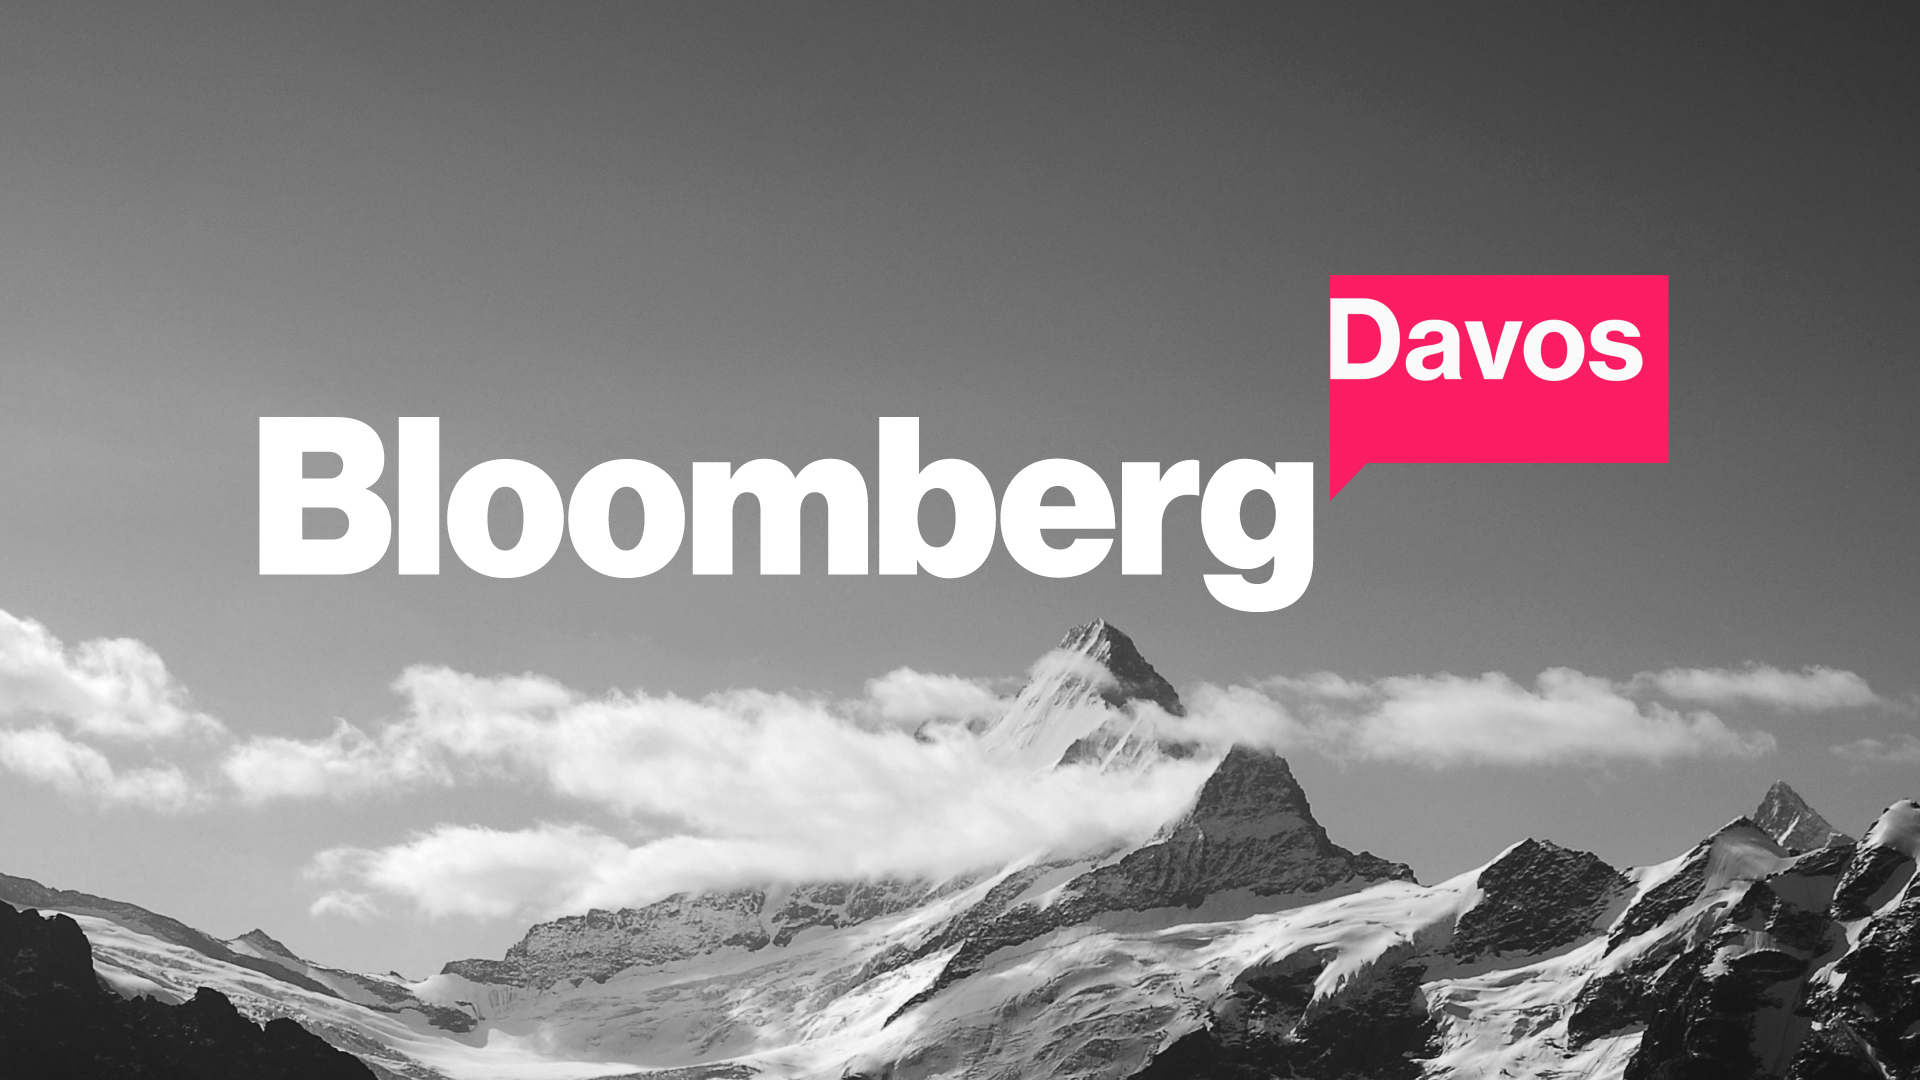 Davos 2017: Day Two at the World Economic Forum